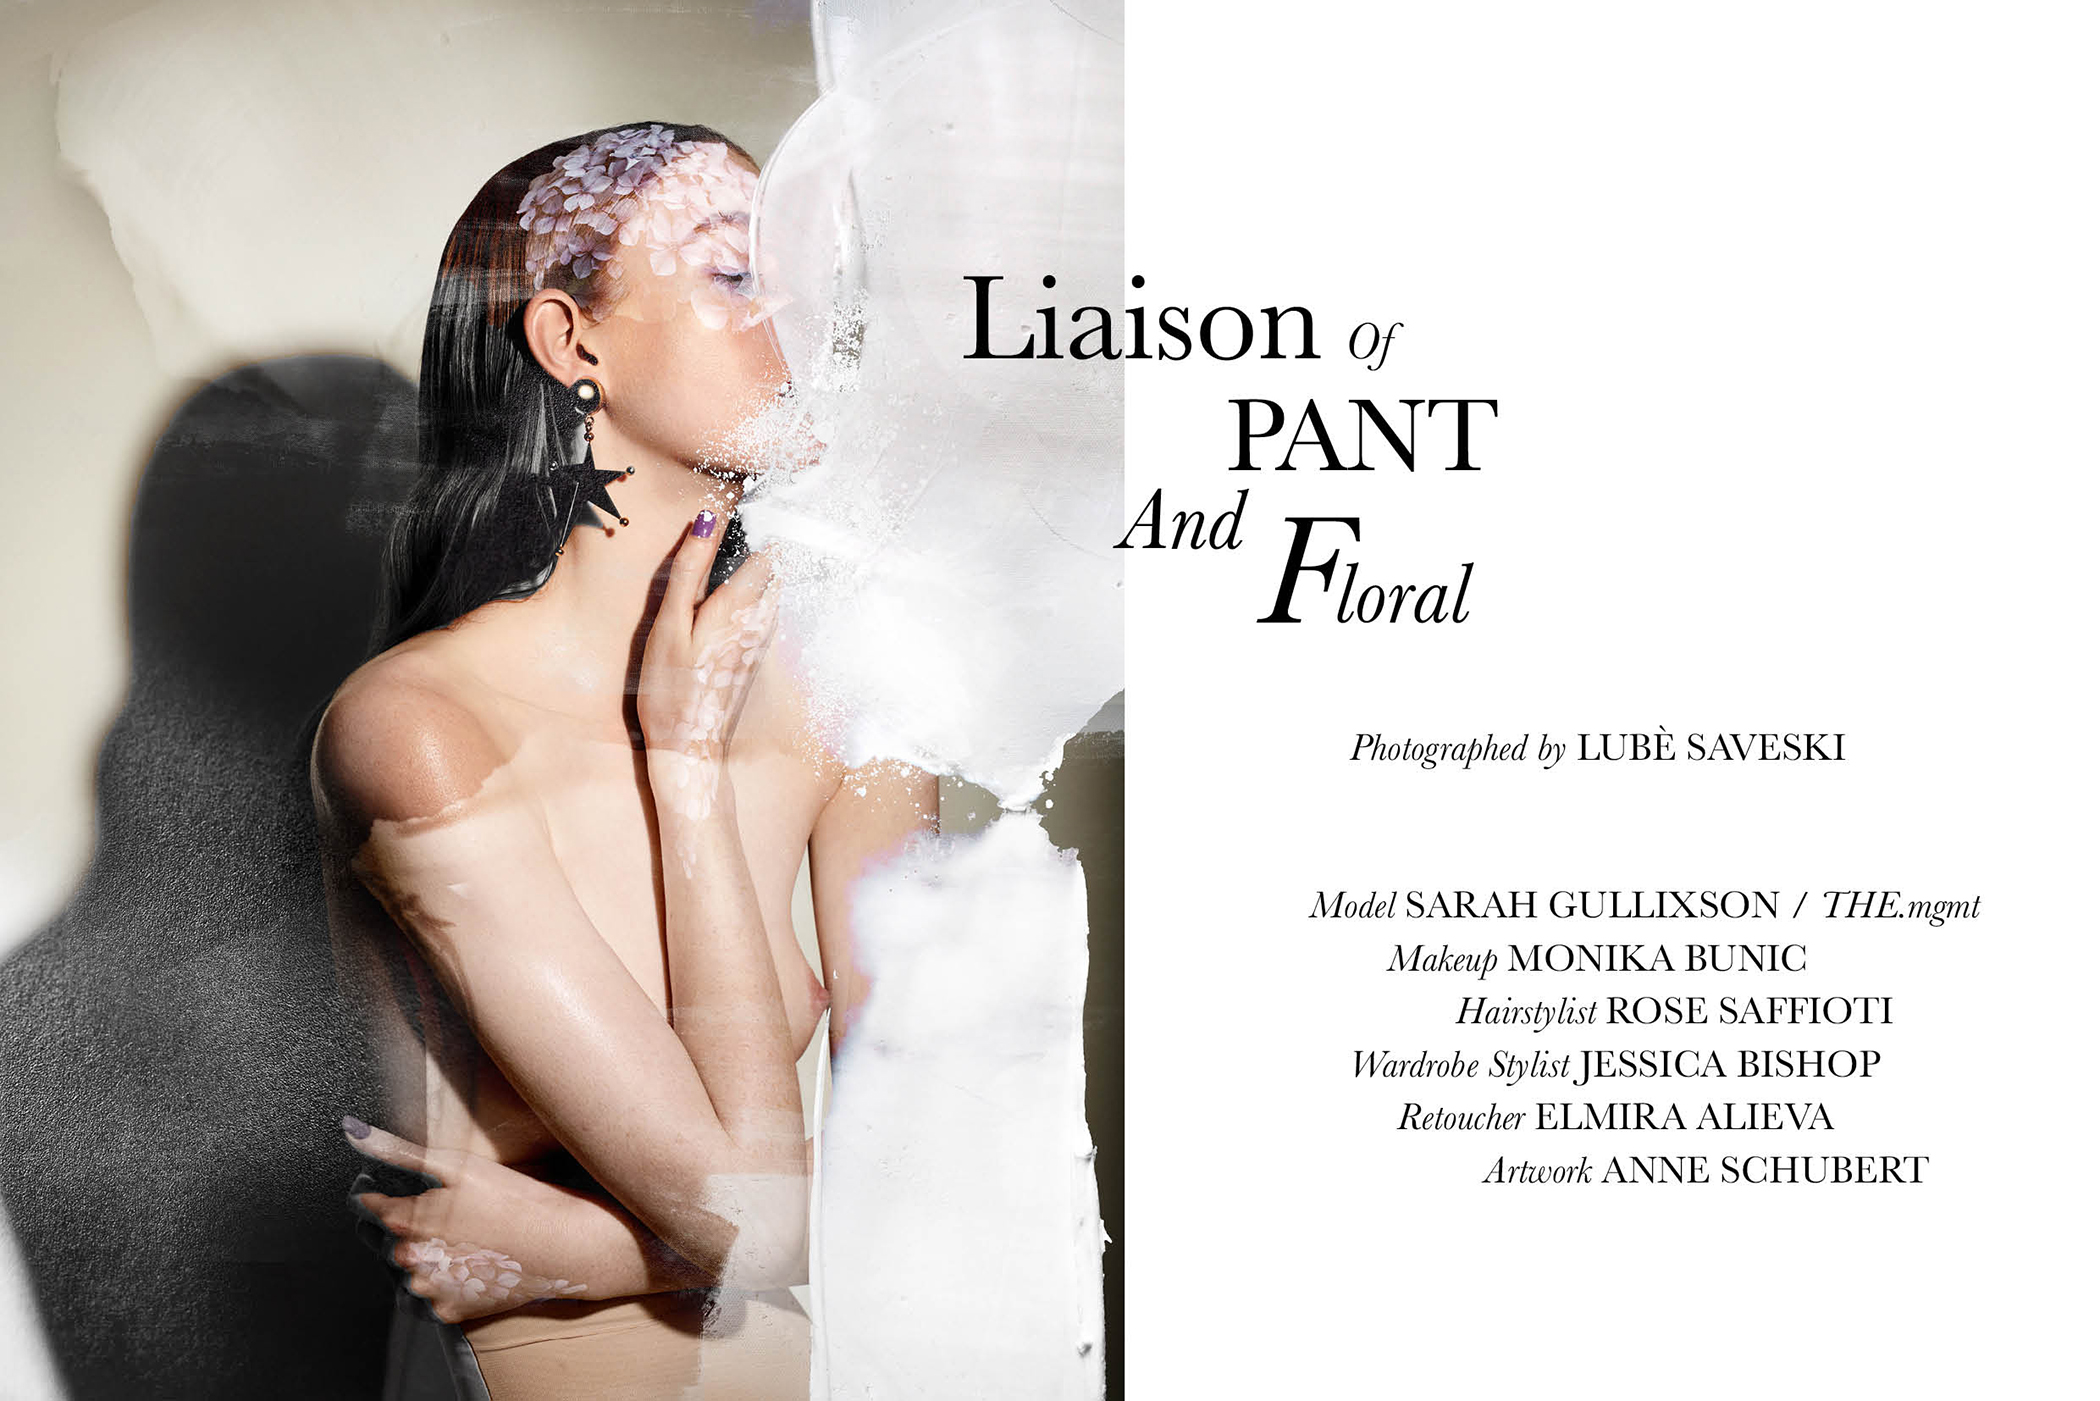 liaison-of-paint-and-floral.jpg